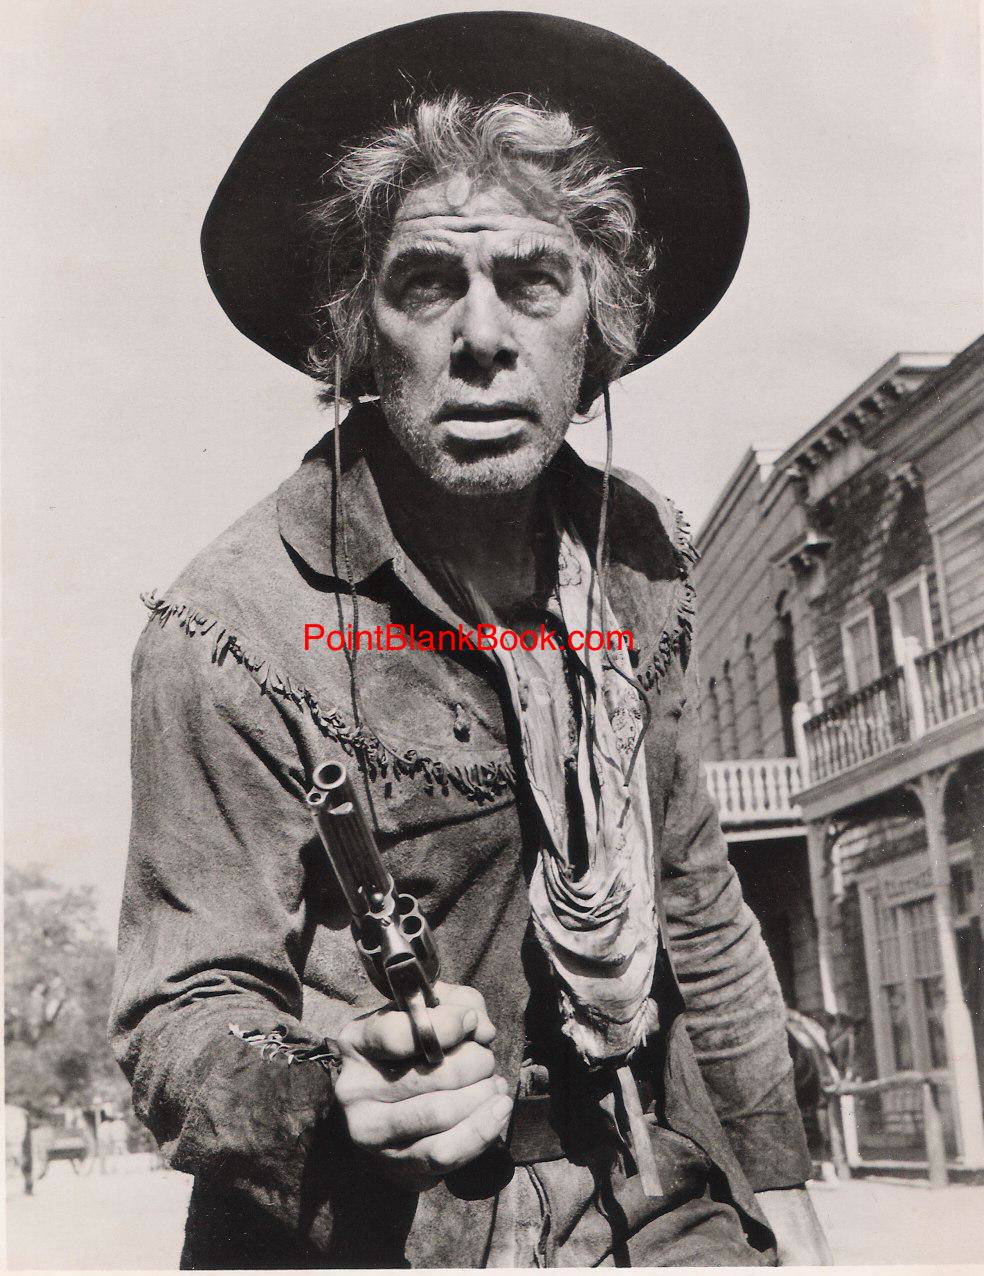 Marvin as Kid Shelleen, his Oscar-winning role in Cat Ballou (1965).